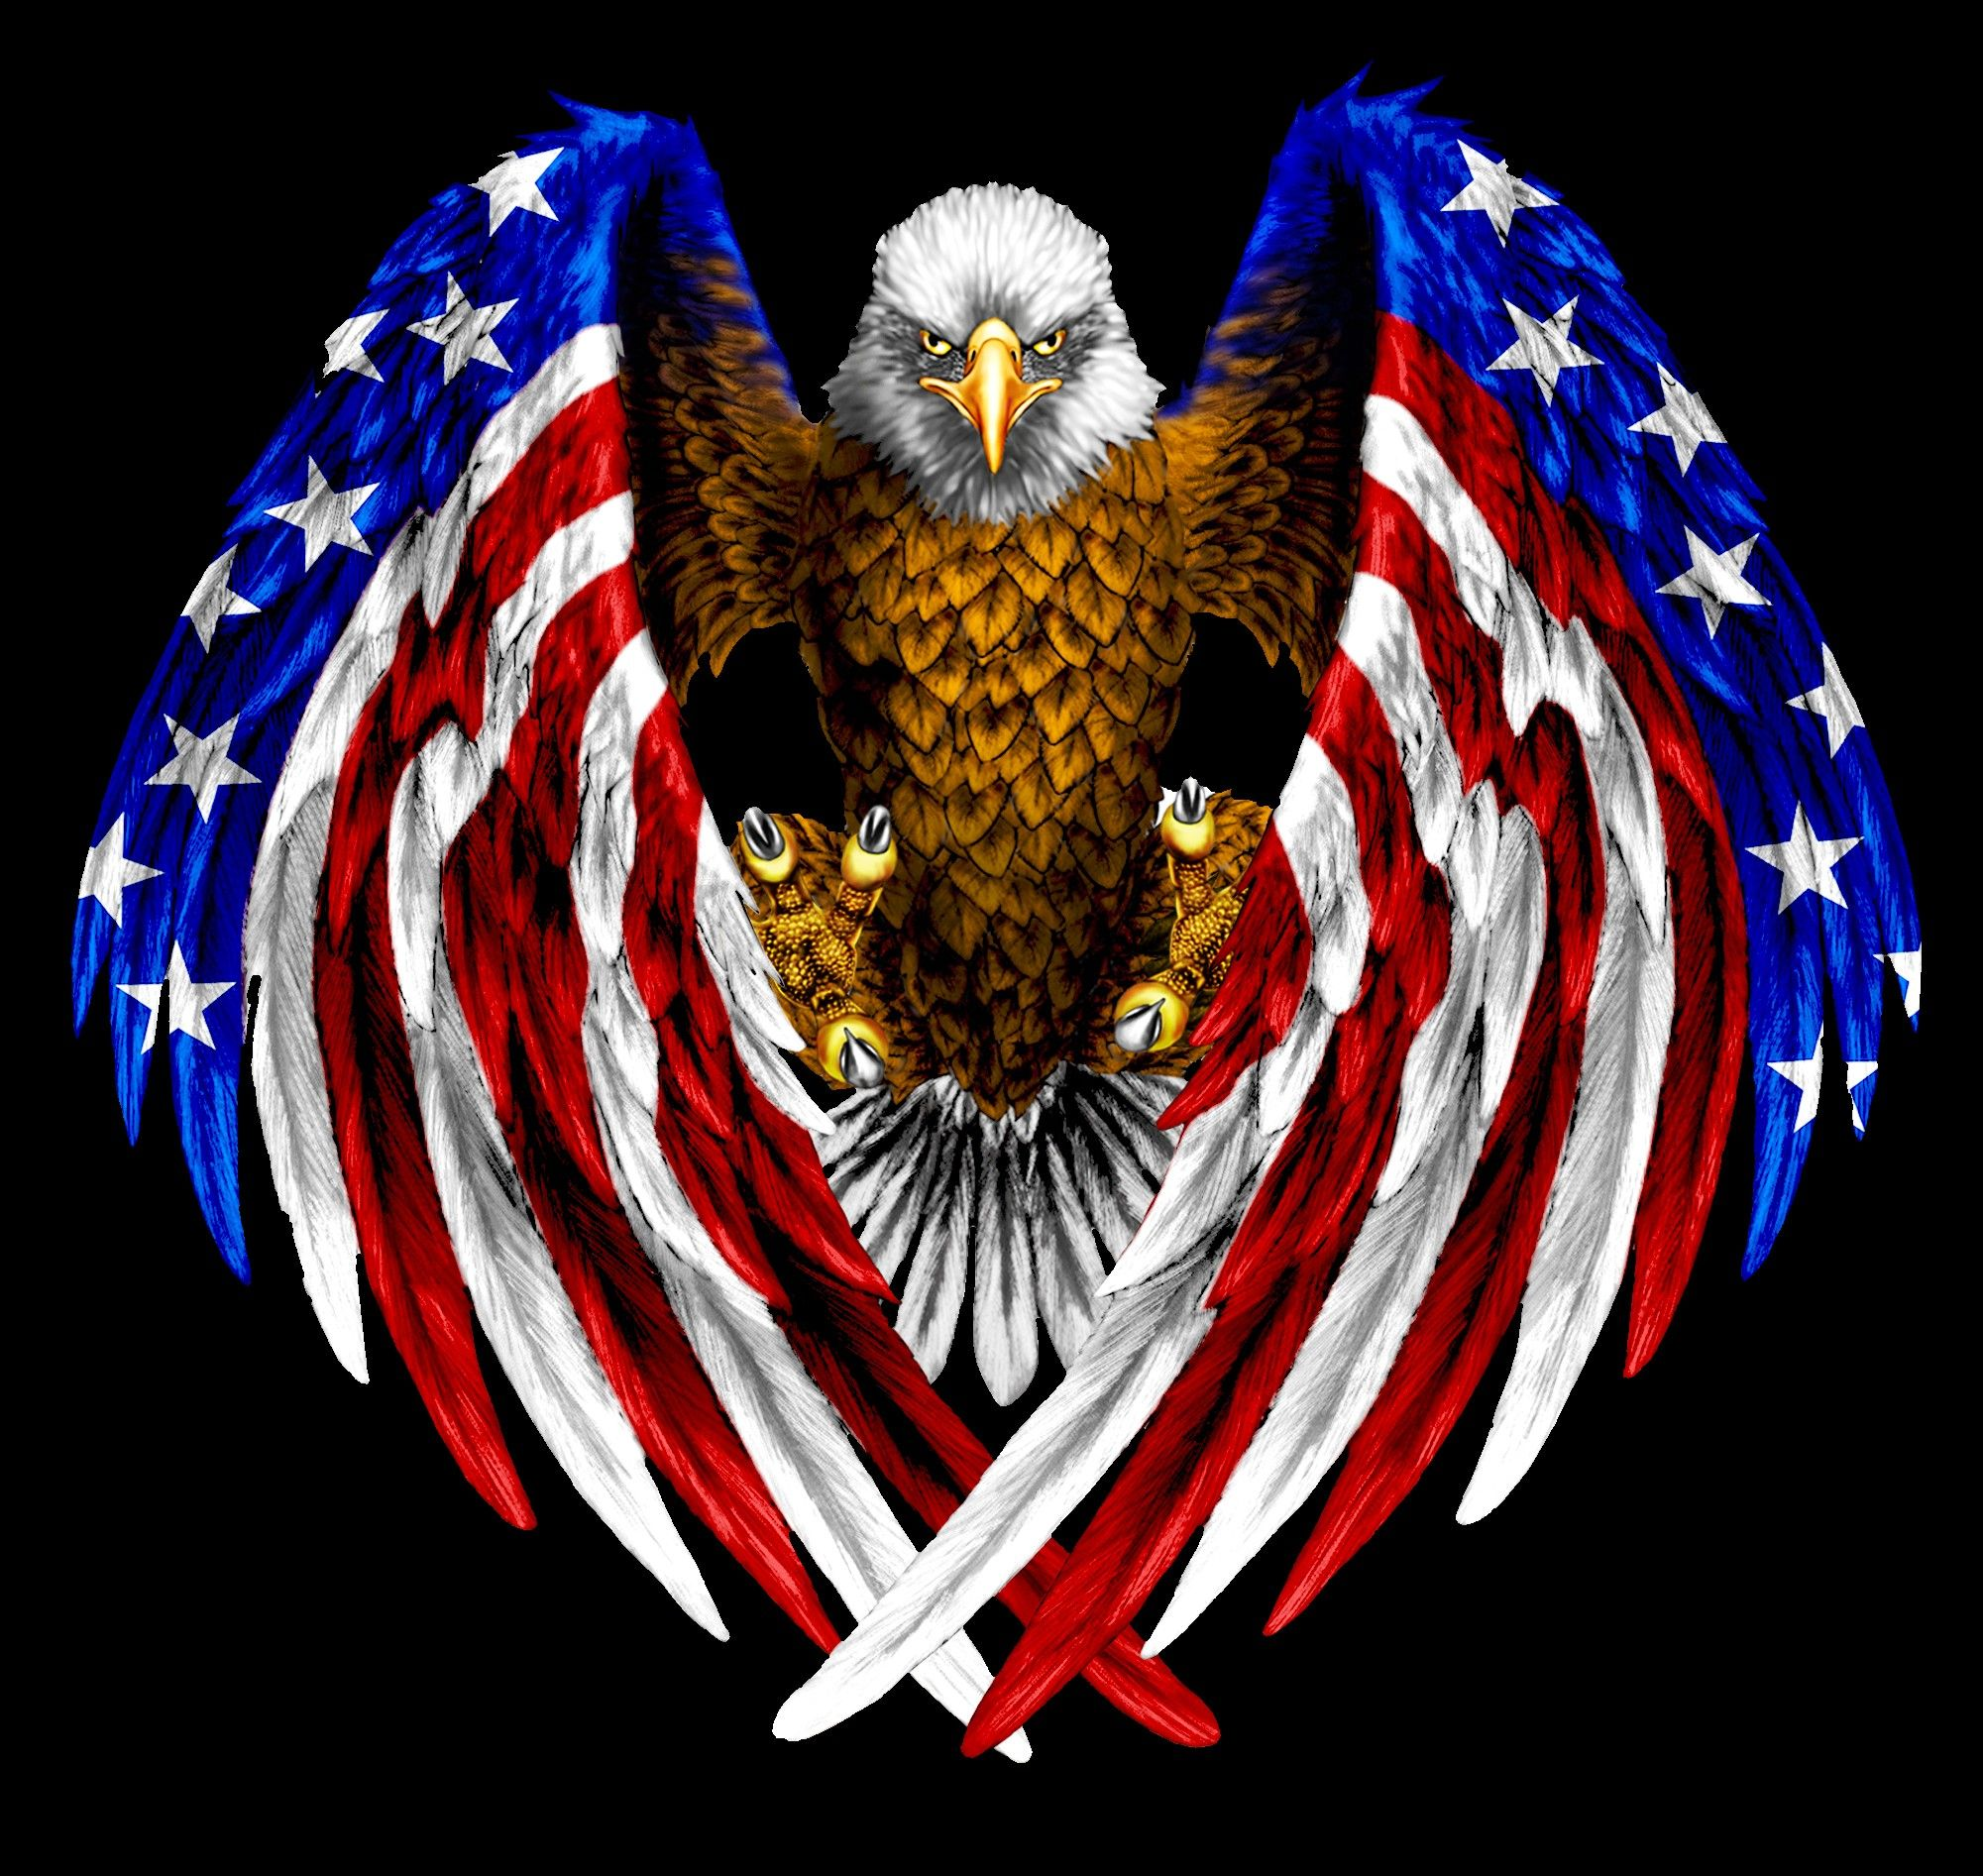 medium resolution of image result for eagle clipart